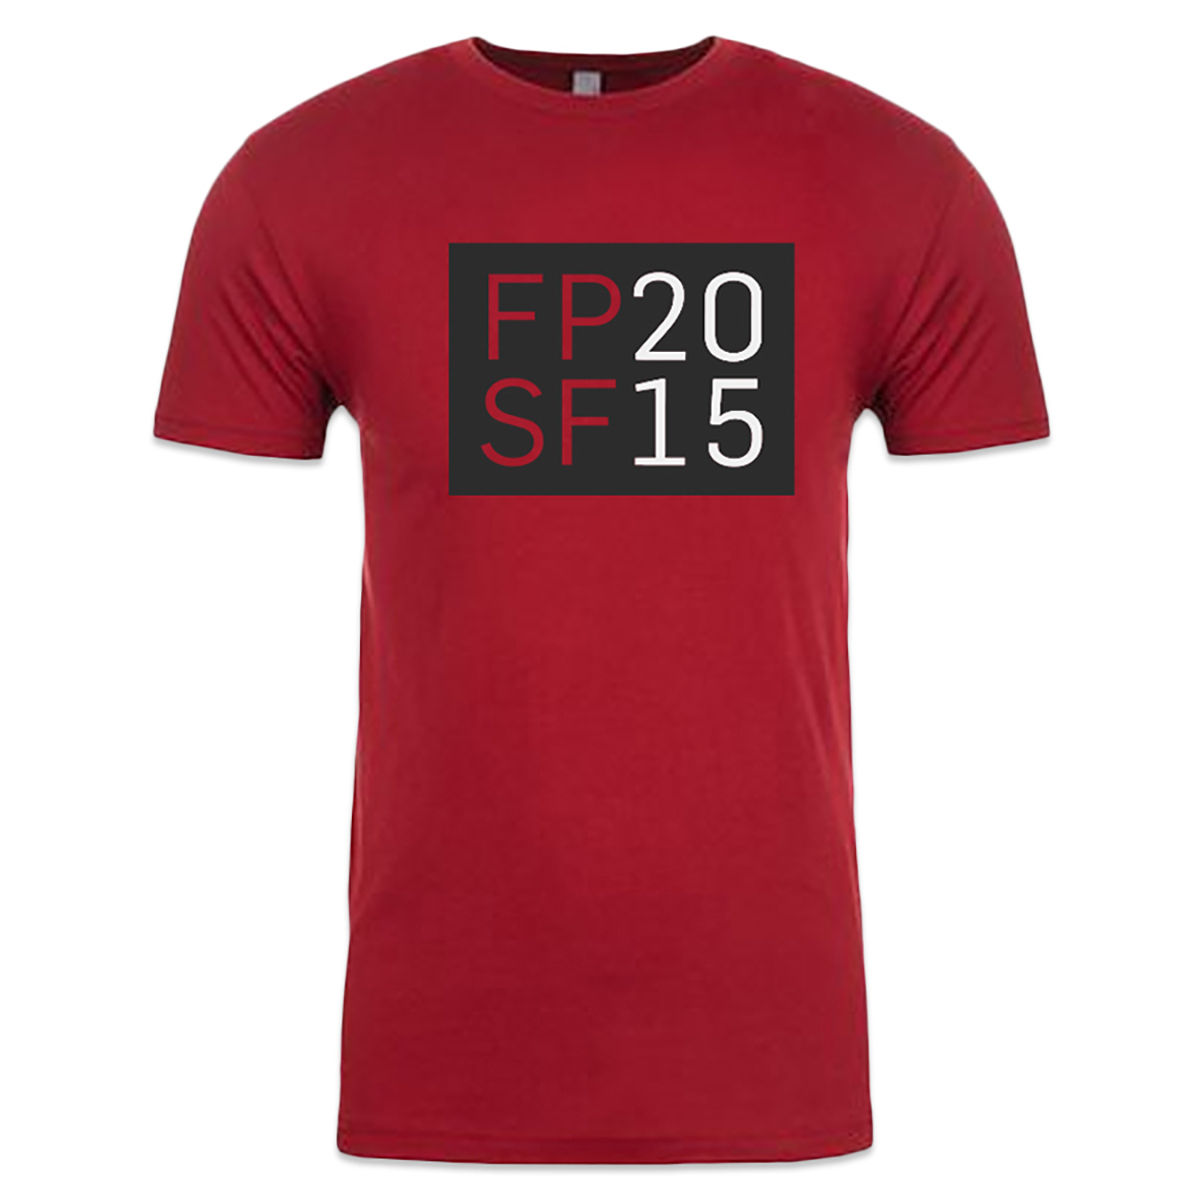 FPSF 2015 Unisex Lineup T-Shirt  (Red)